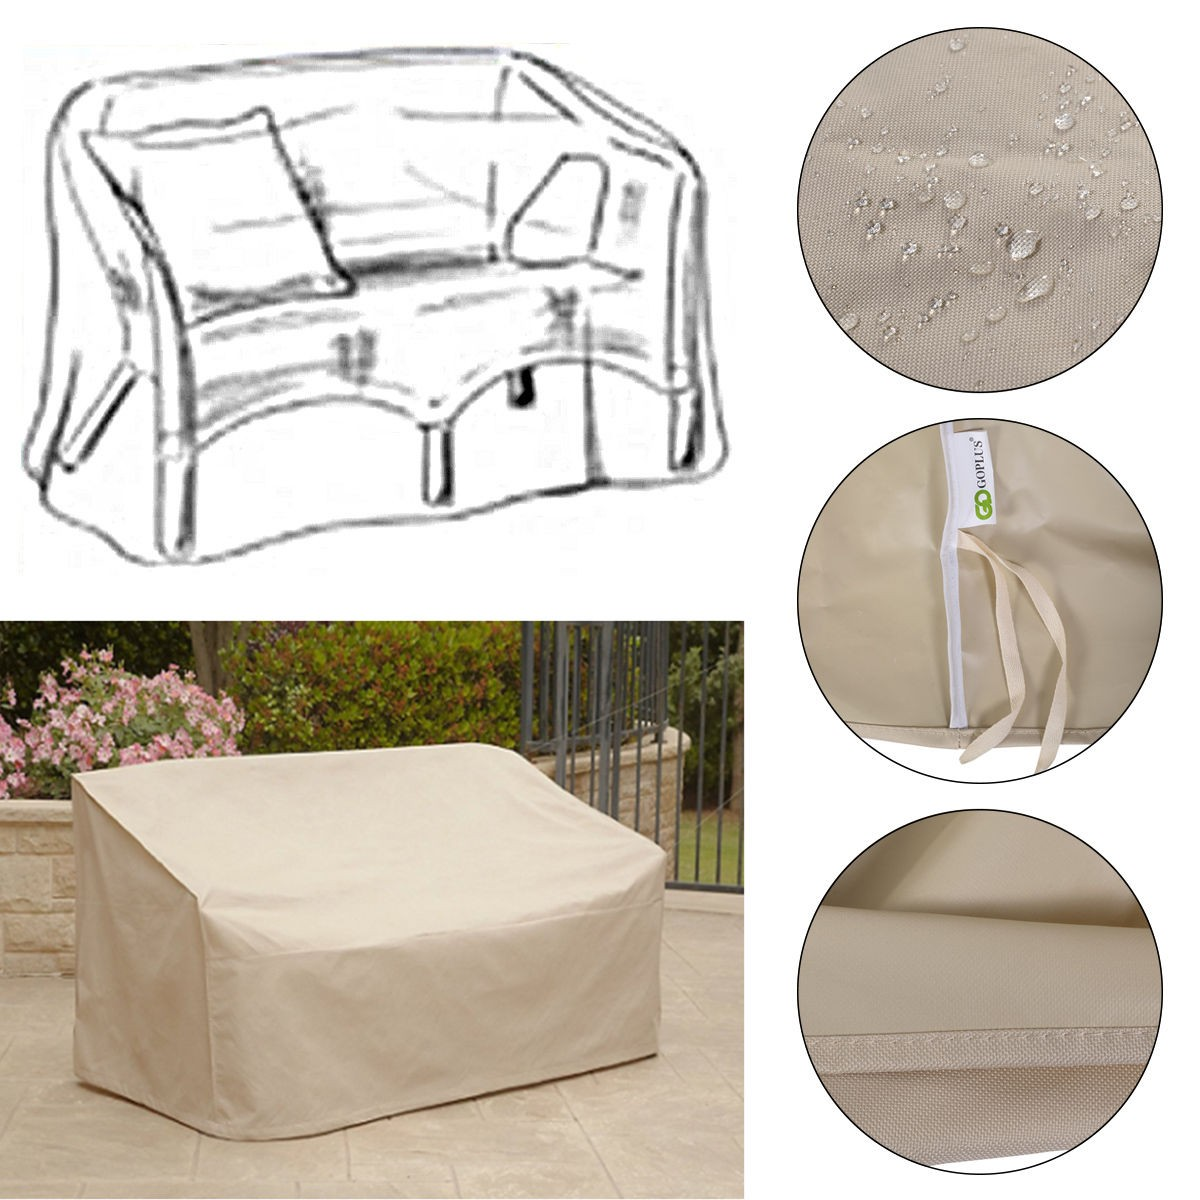 Details about waterproof high back patio loveseat bench cover outdoor furniture protection new